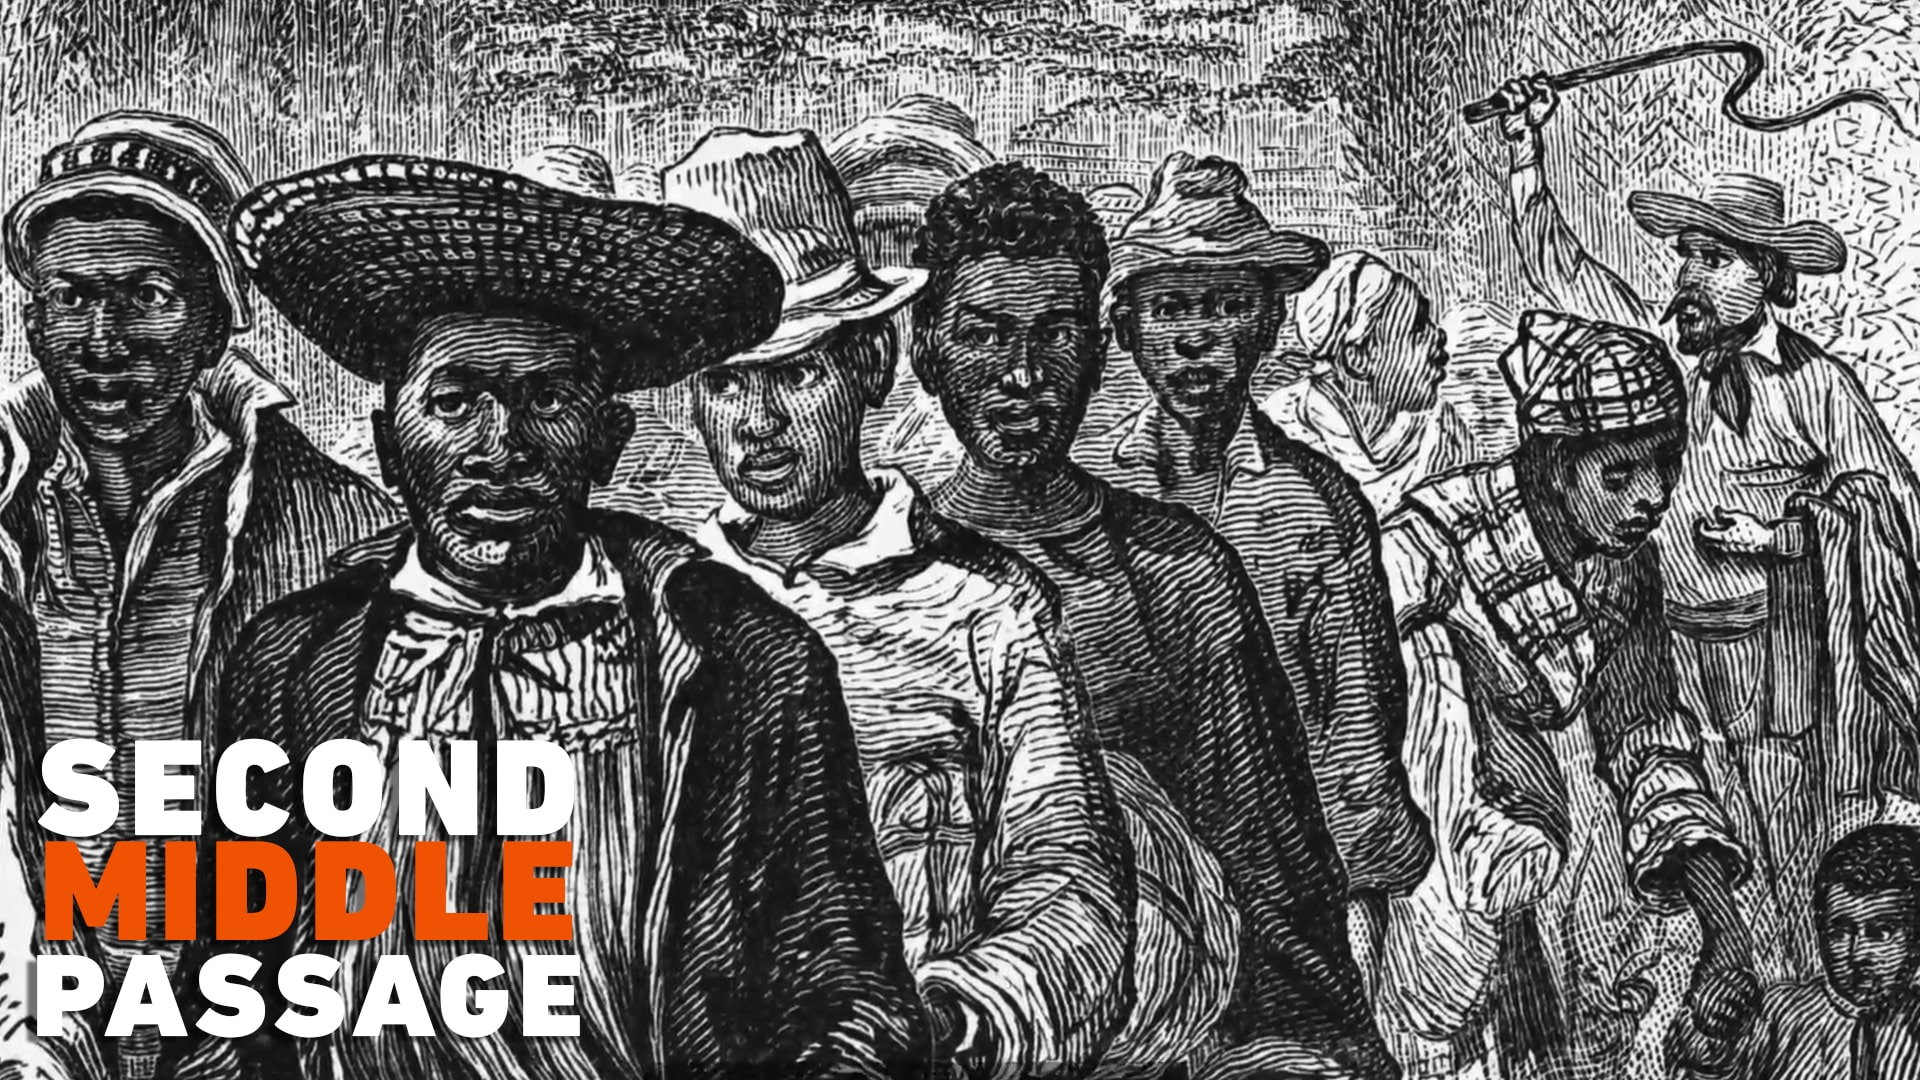 The Second Middle Passage | Black History in Two Minutes (or so)